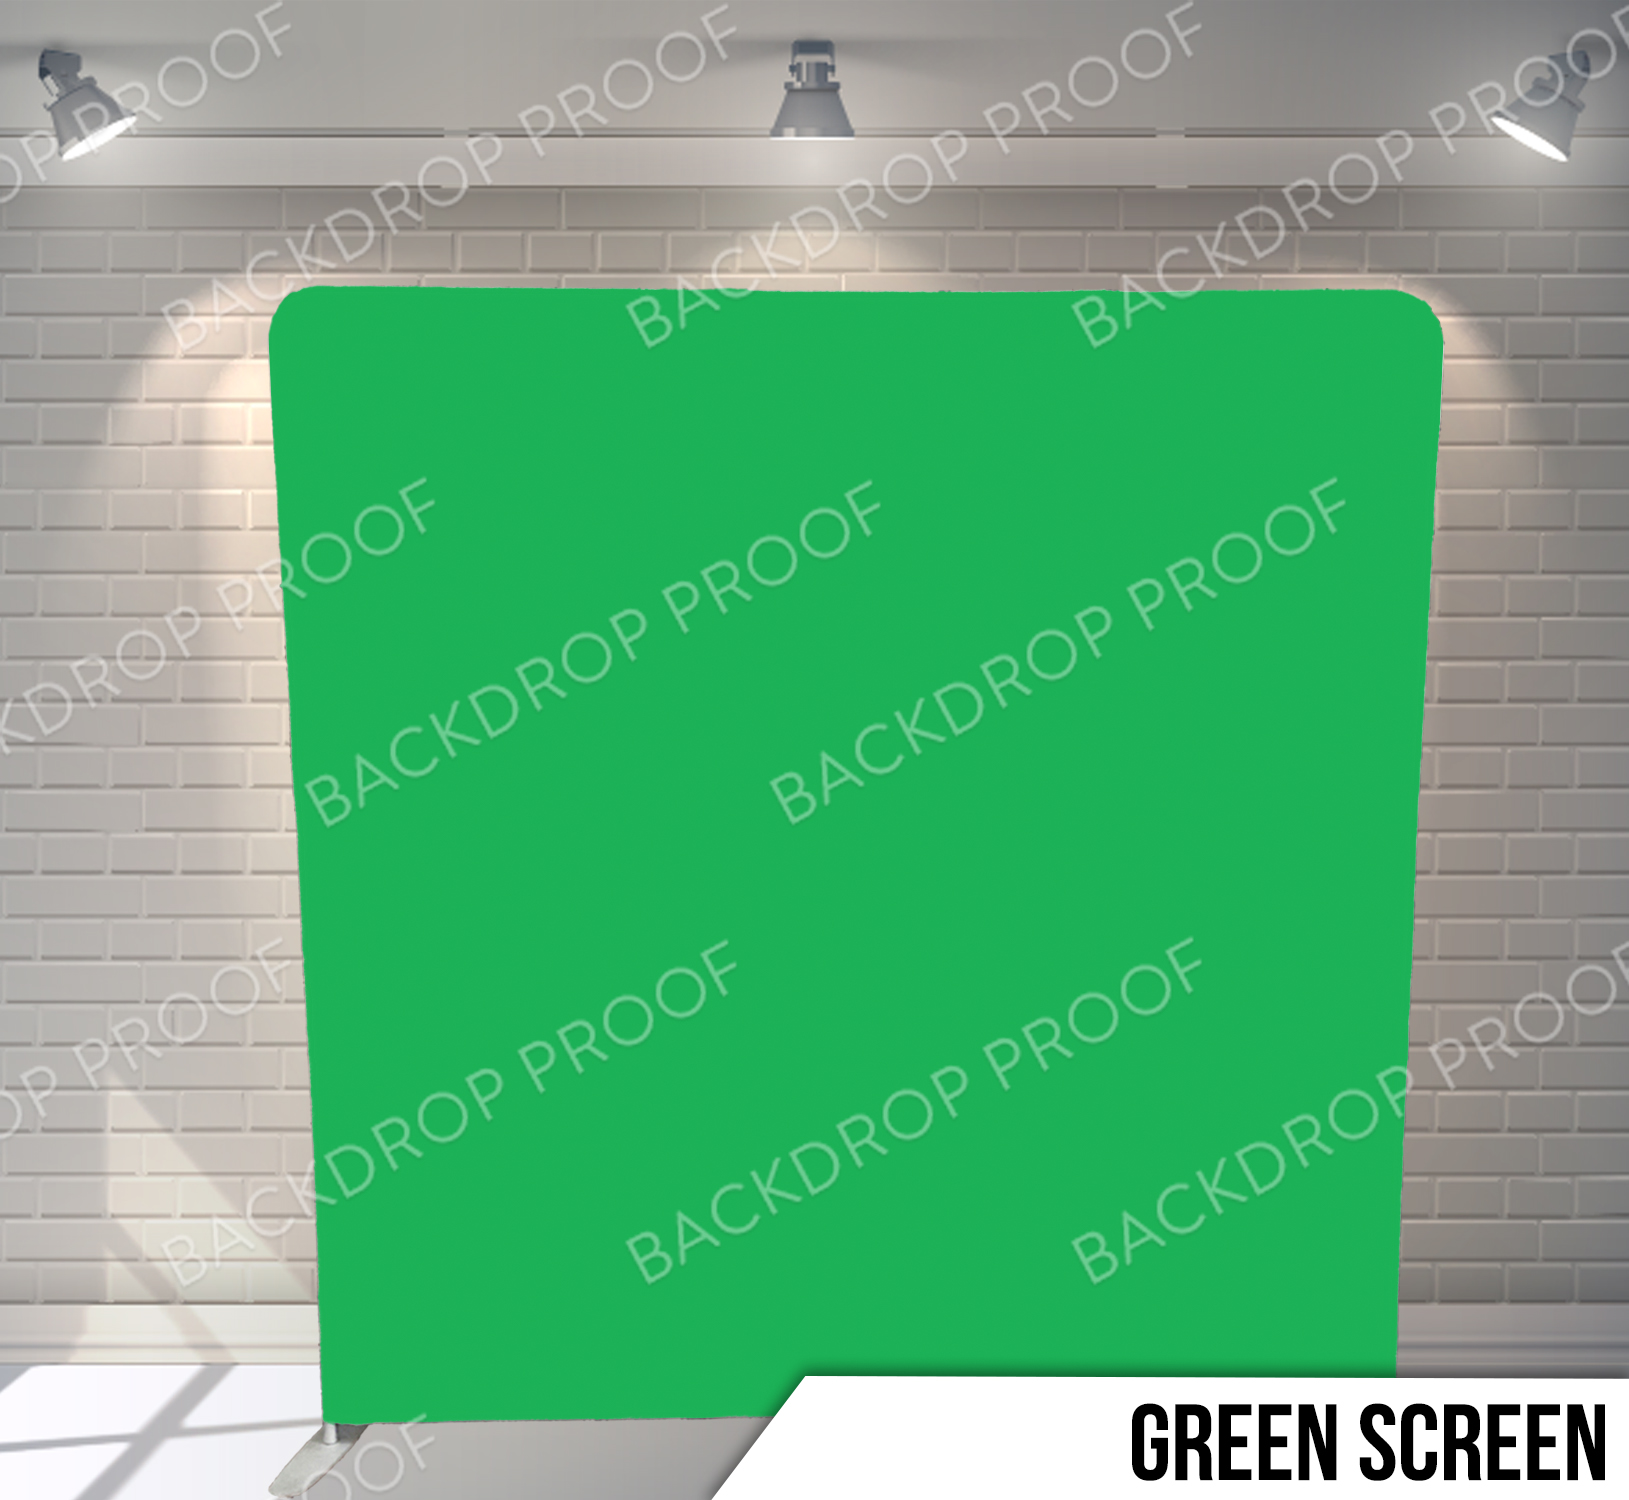 Pillow_GreenScreen_G - Copy.jpg